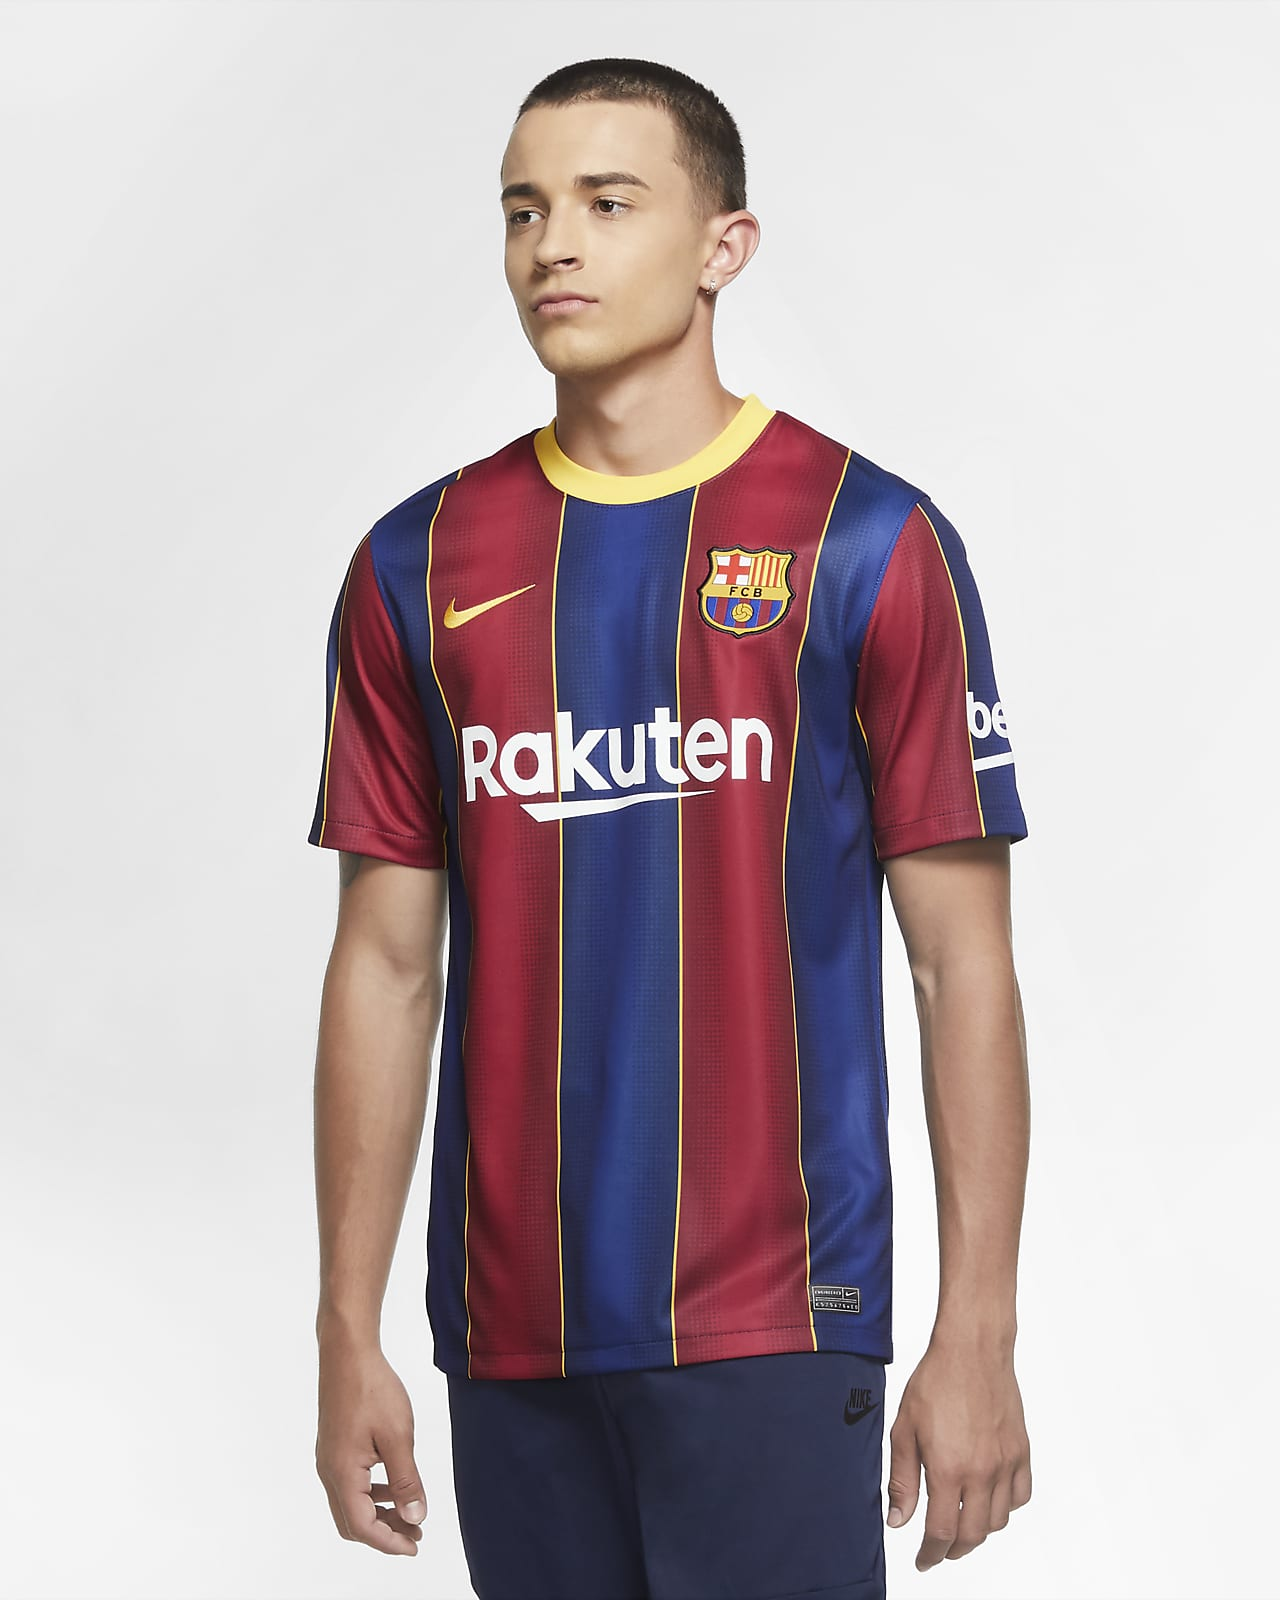 Ten cuidado toma una foto Actuación  F.C. Barcelona 2020/21 Stadium Home Men's Football Shirt. Nike MY